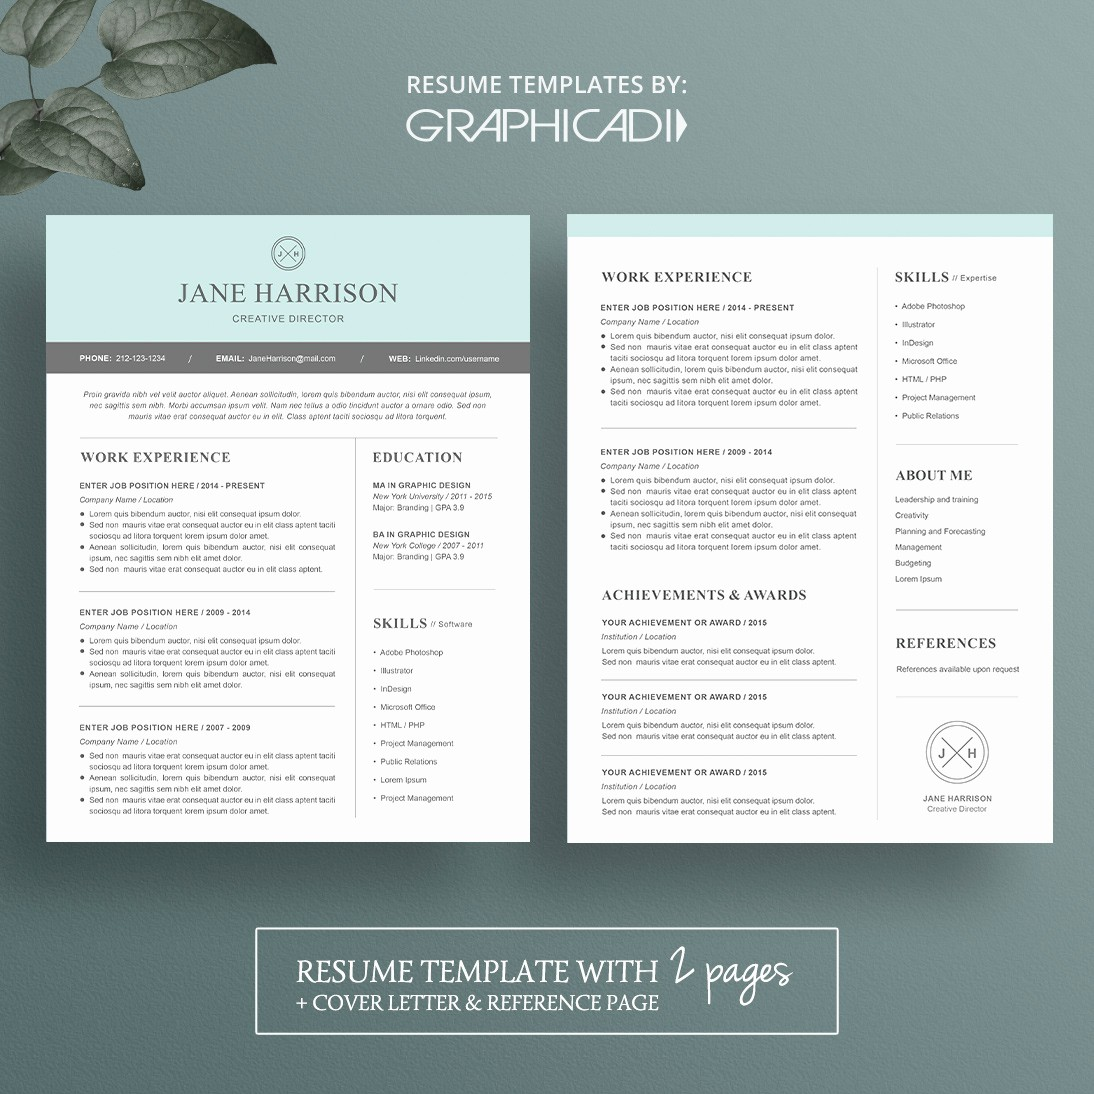 Resume format 2015 Free Download Luxury Modern Resume Template for Microsoft Word Limeresumes